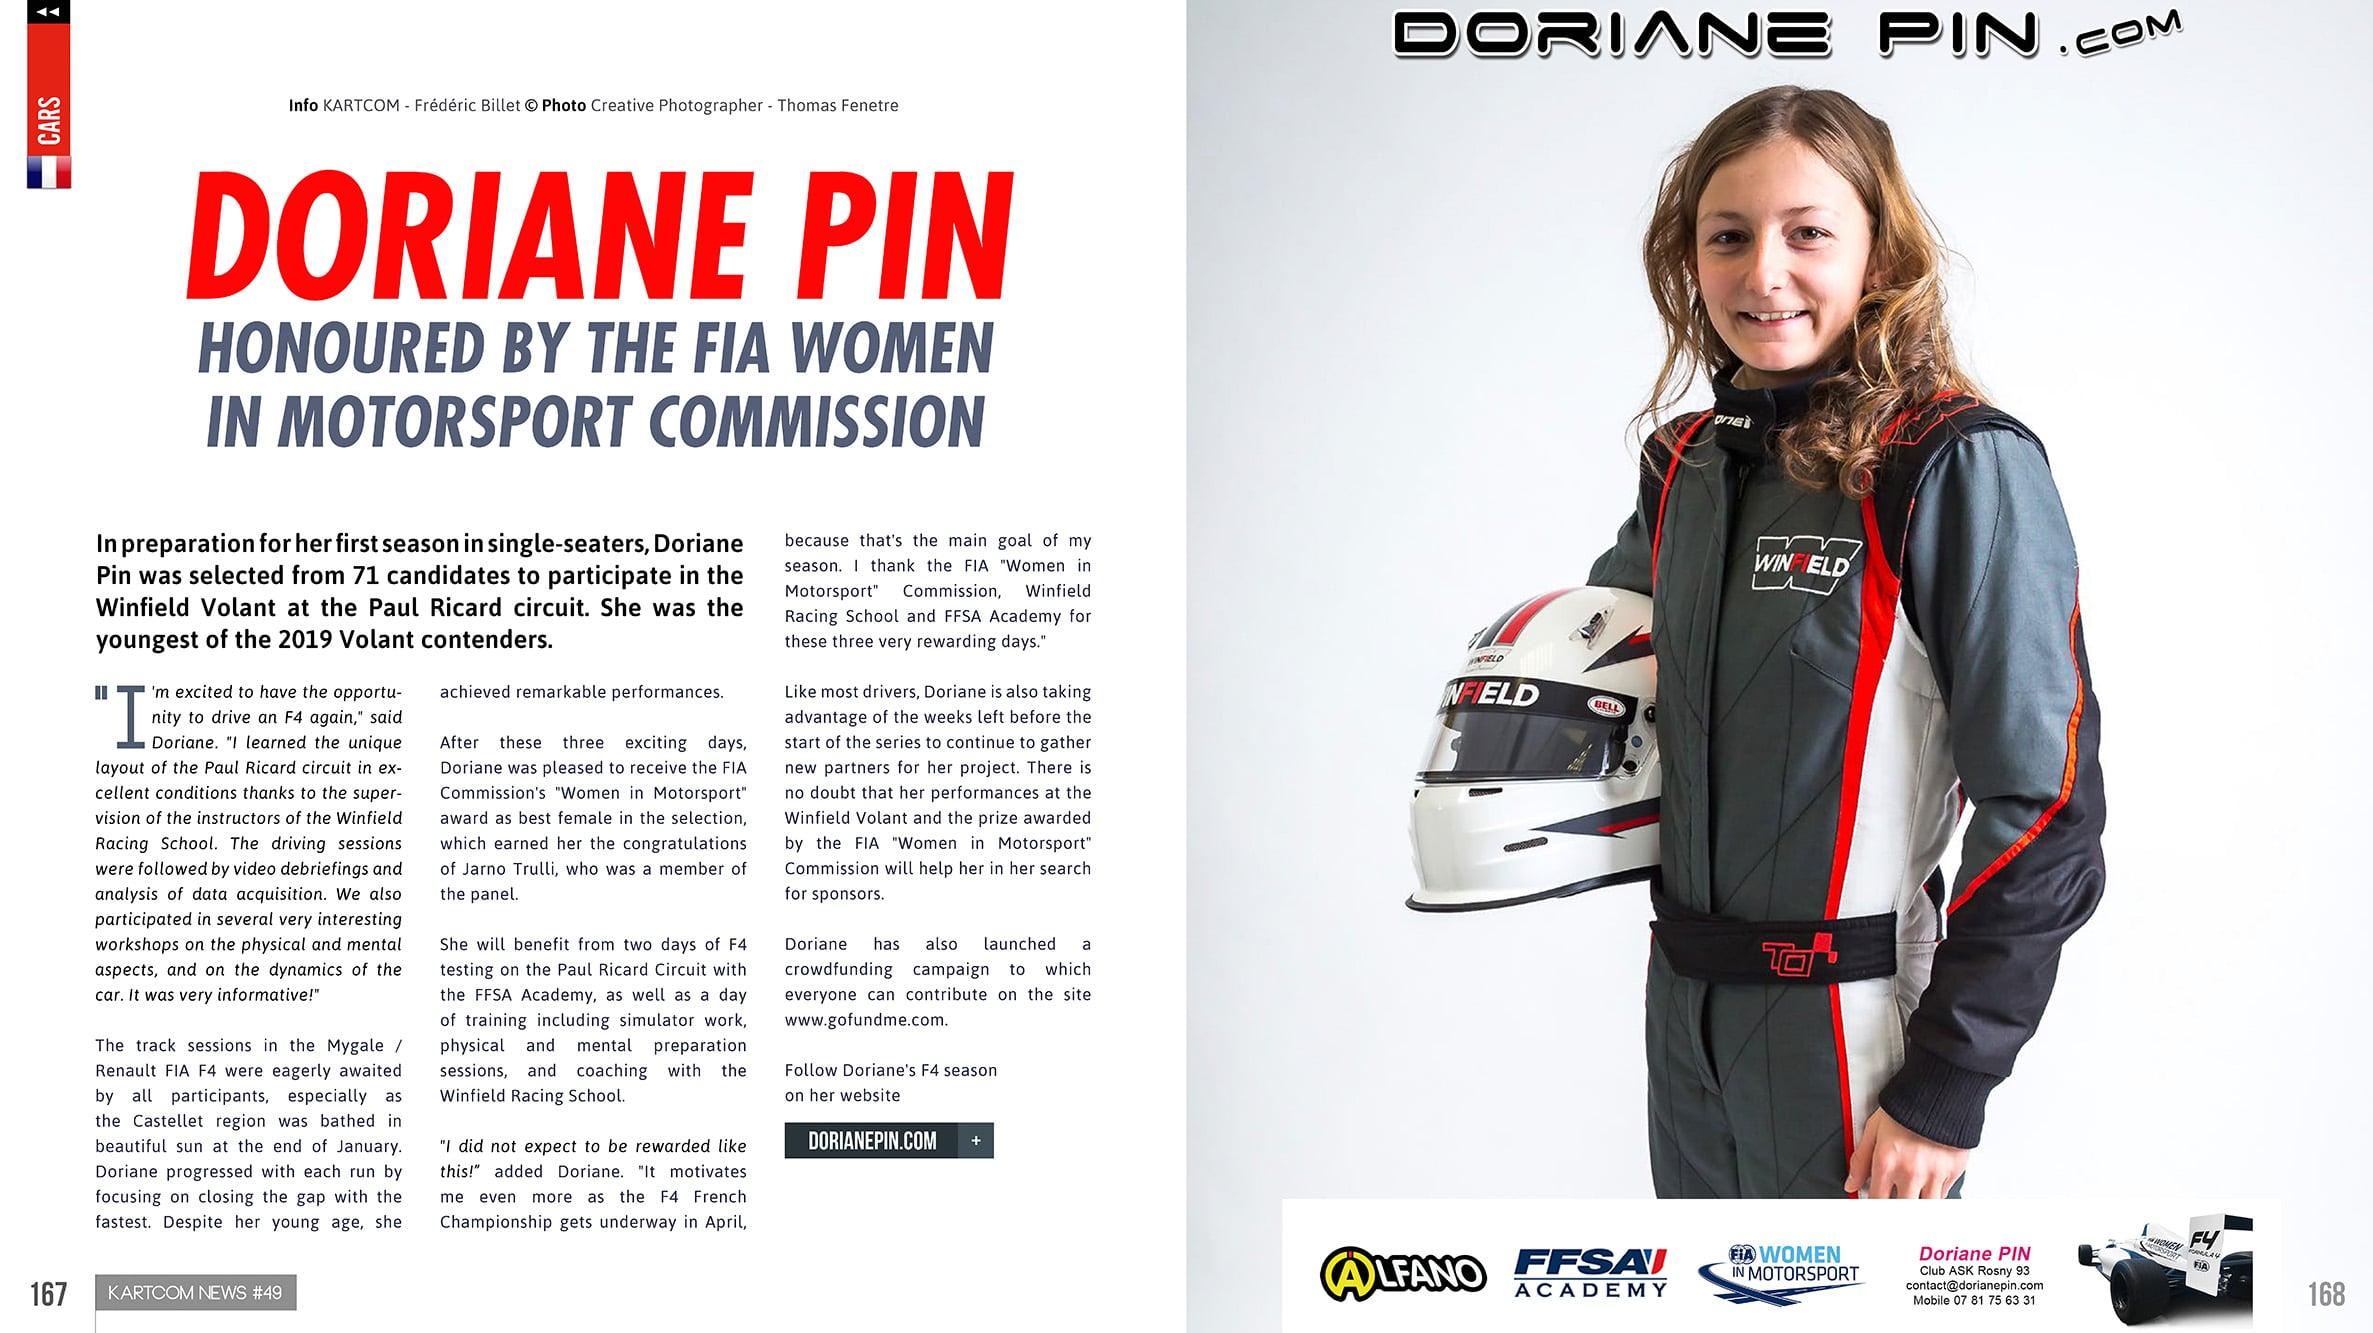 Doriane Pin honoured by the FIA Women in Motorsport Commission during Winfield Challenge at Le Castellet , posted feb 2019